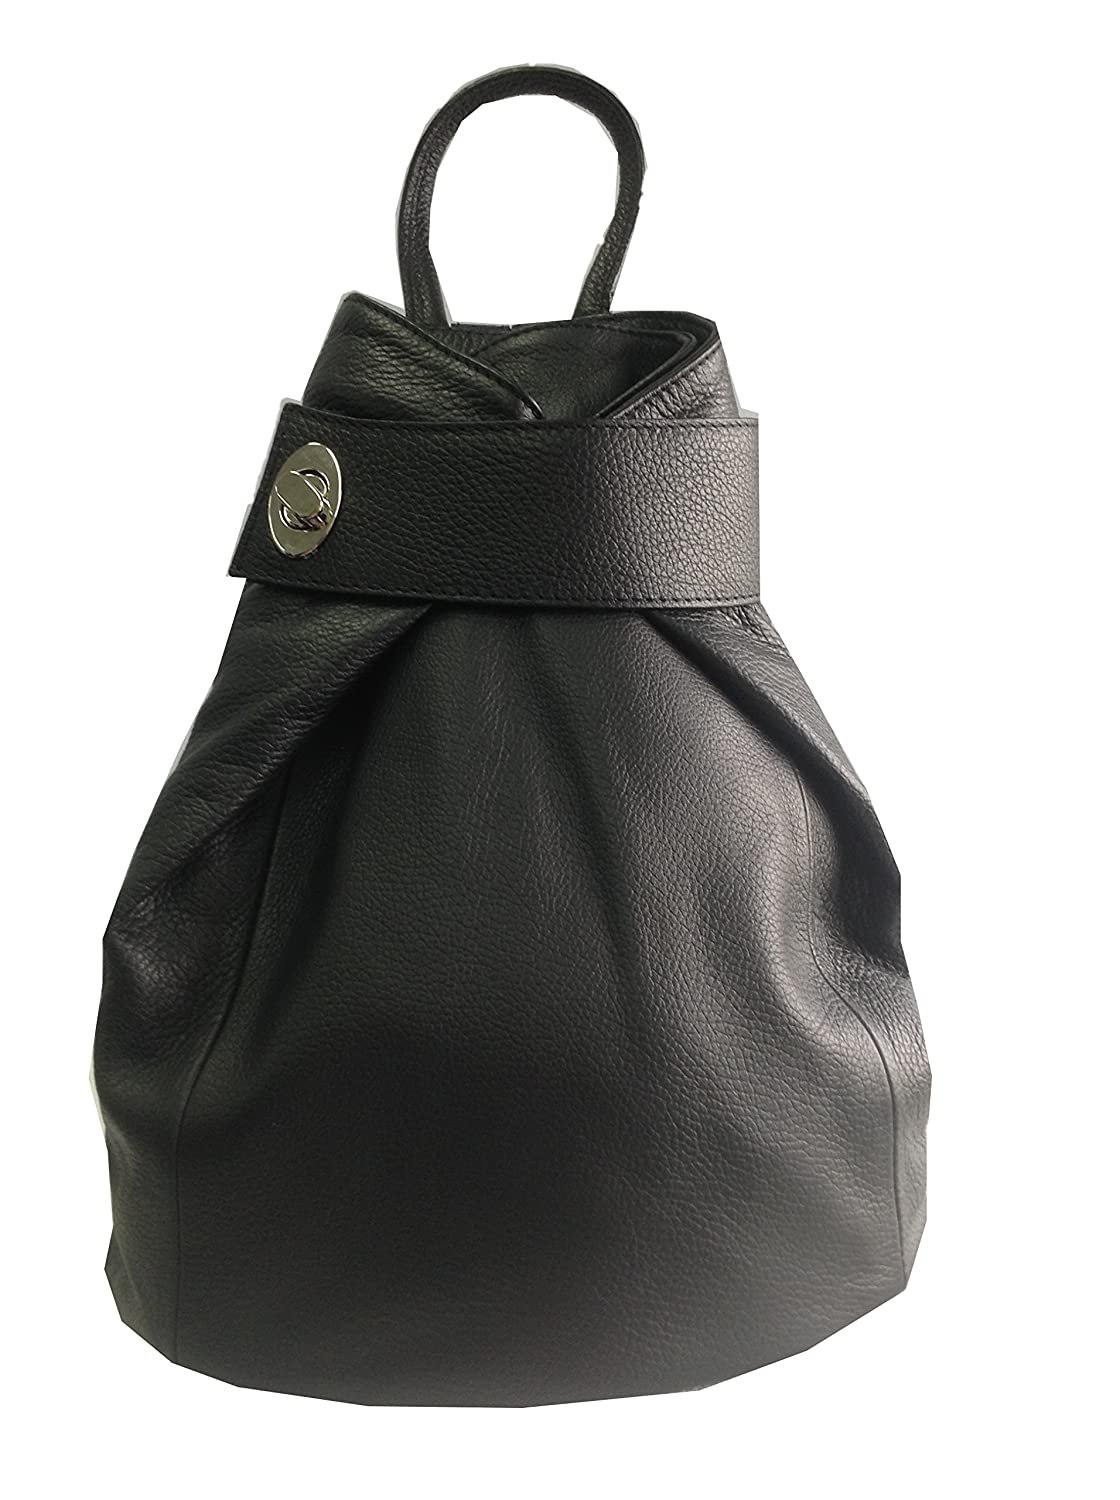 45b558529bc6a Italian Leather Backpack Brands- Fenix Toulouse Handball